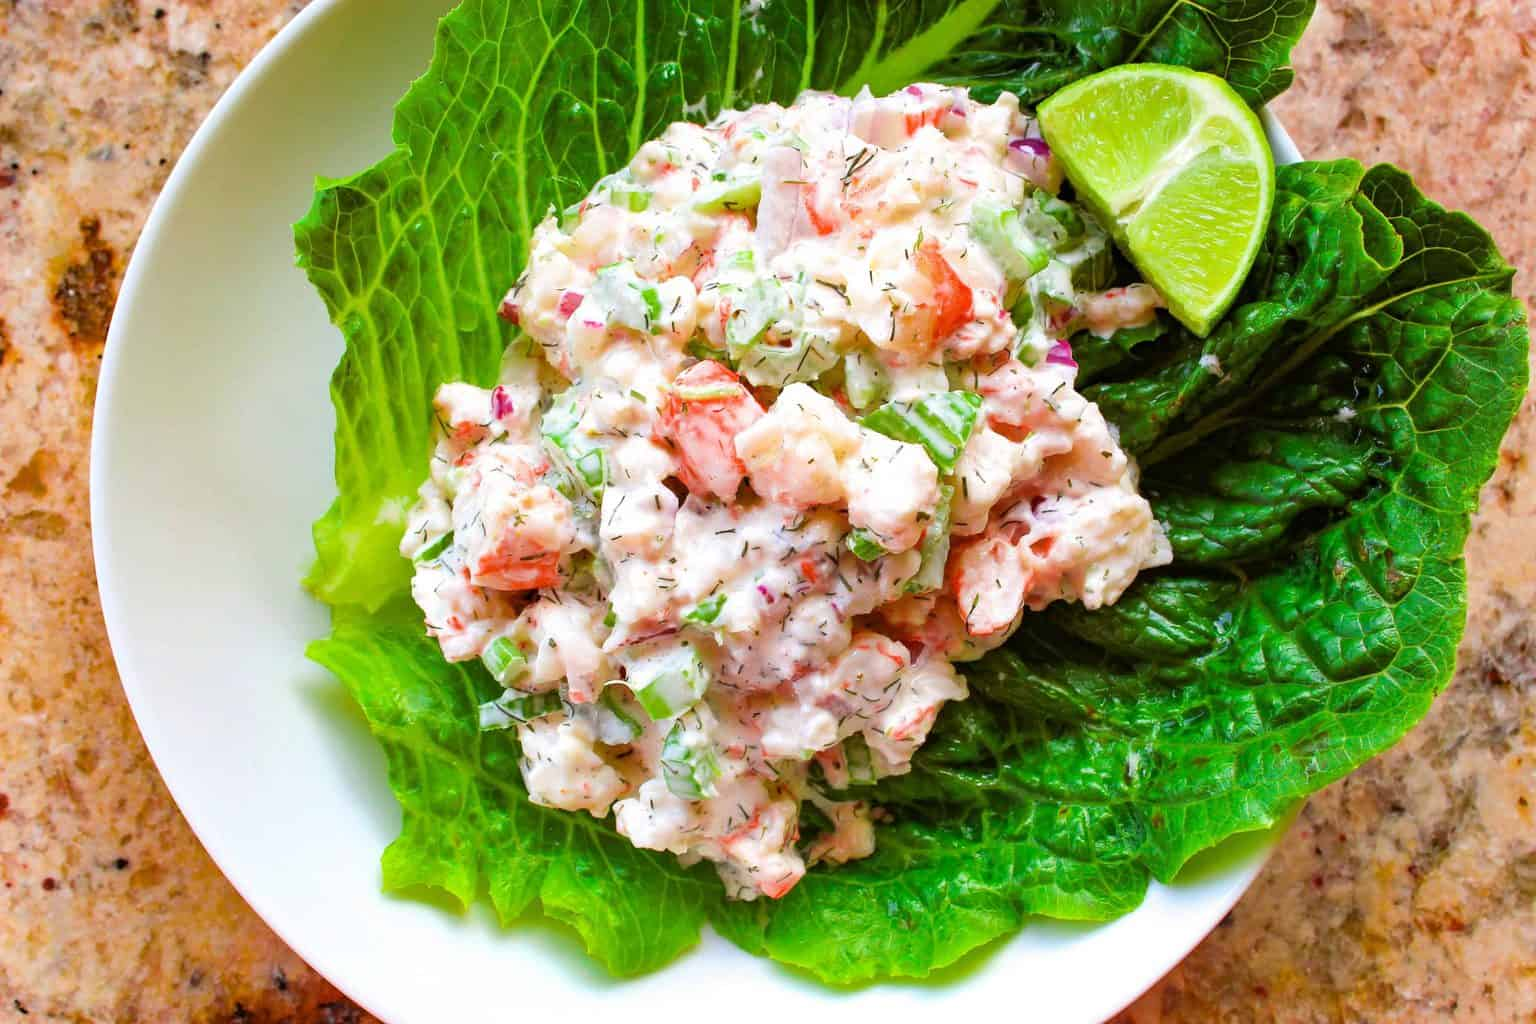 Cold Shrimp Salad on a bed of romaine lettuce garnished with a lime